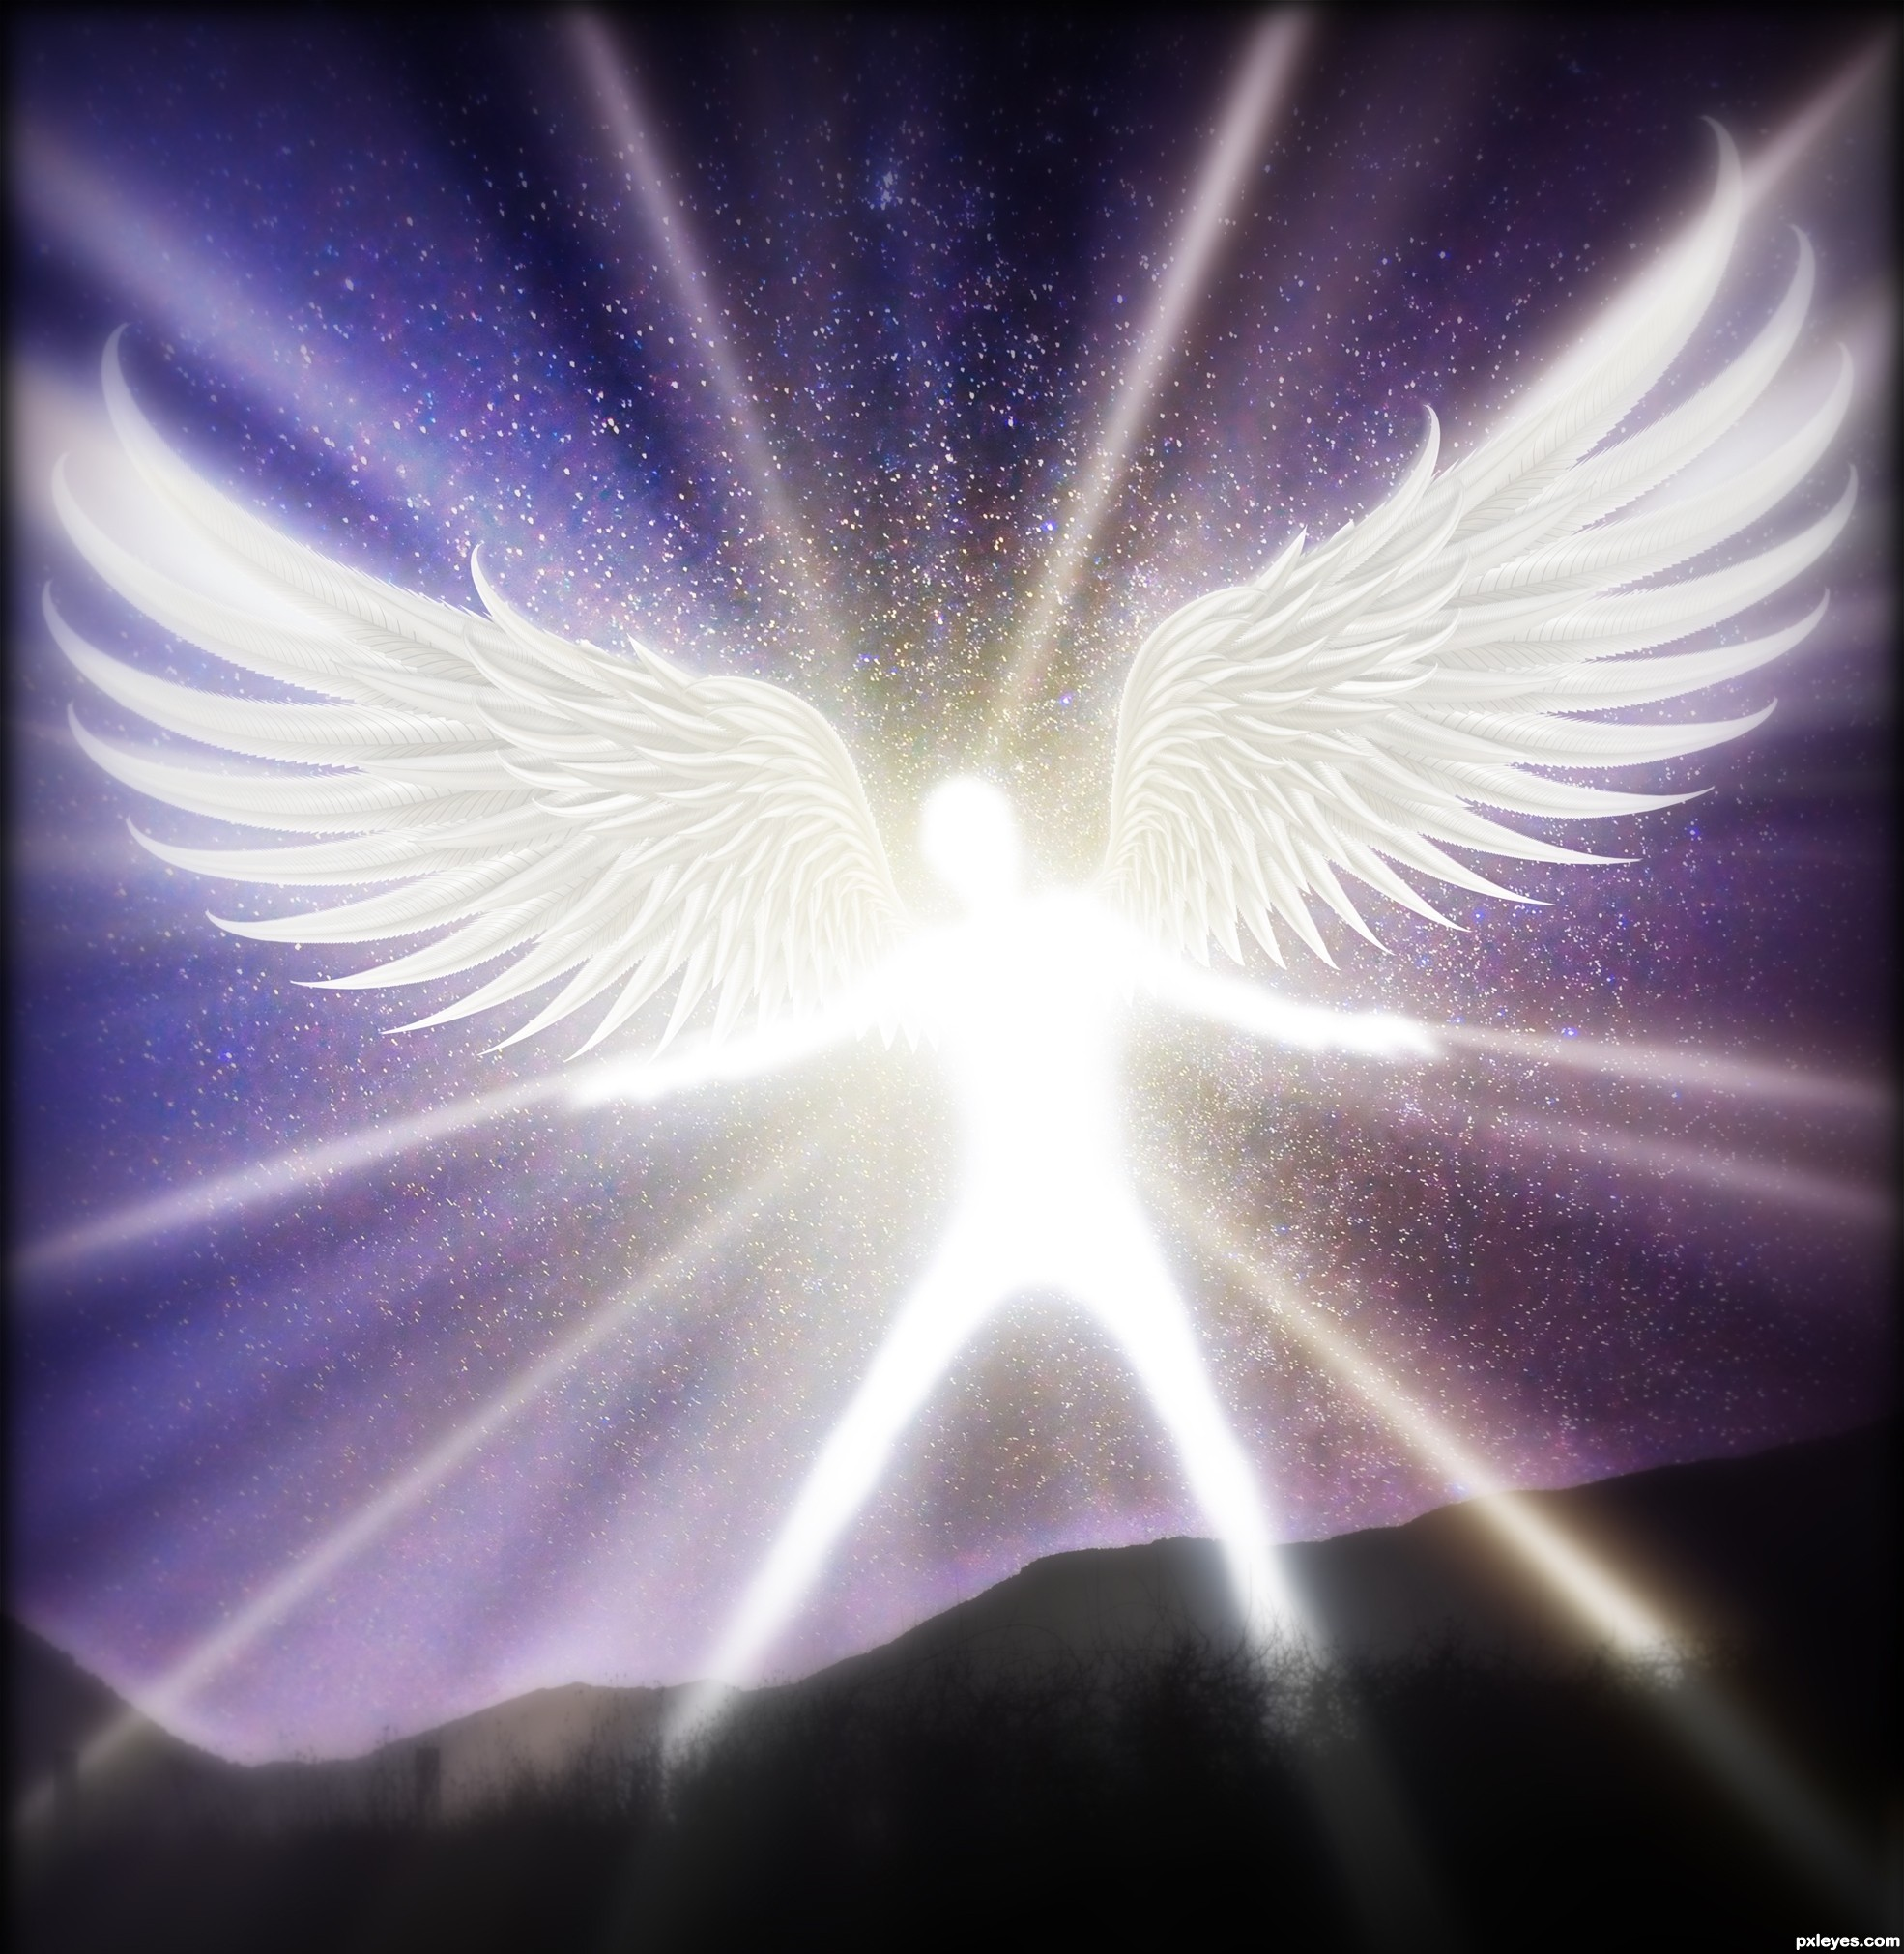 Angel of Light picture by Robart for containers photoshop